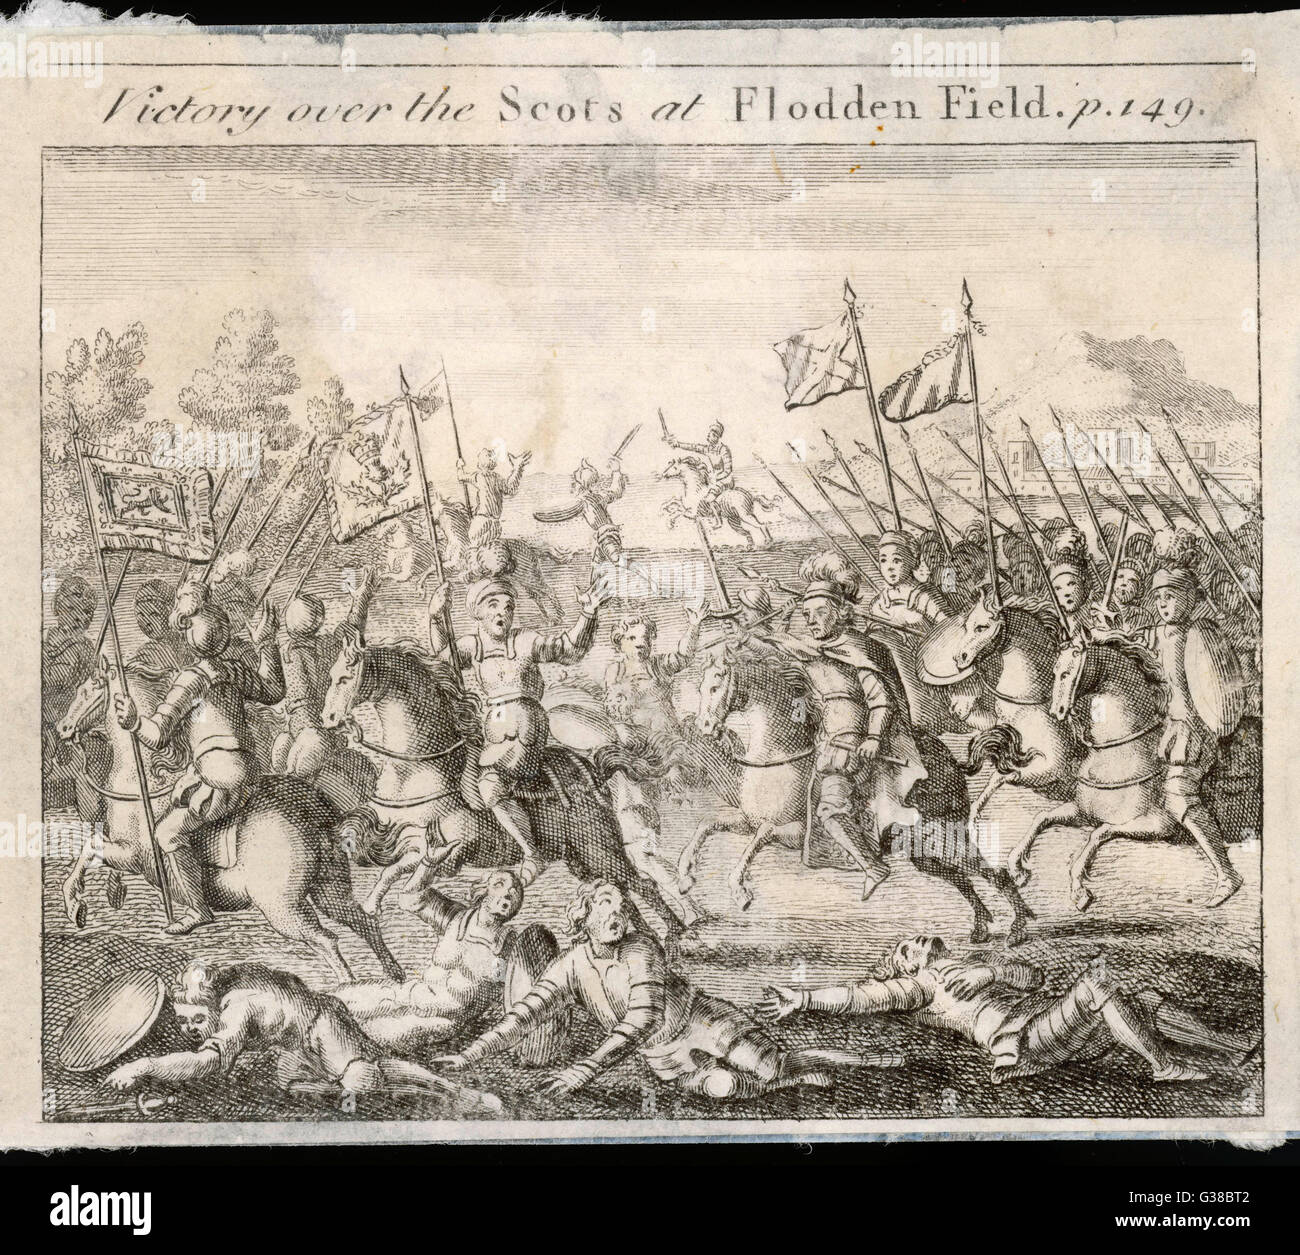 BATTLE OF FLODDEN The earl of Surrey routs the  Scots army : James IV of  Scotland and all his principal  nobles - Stock Image